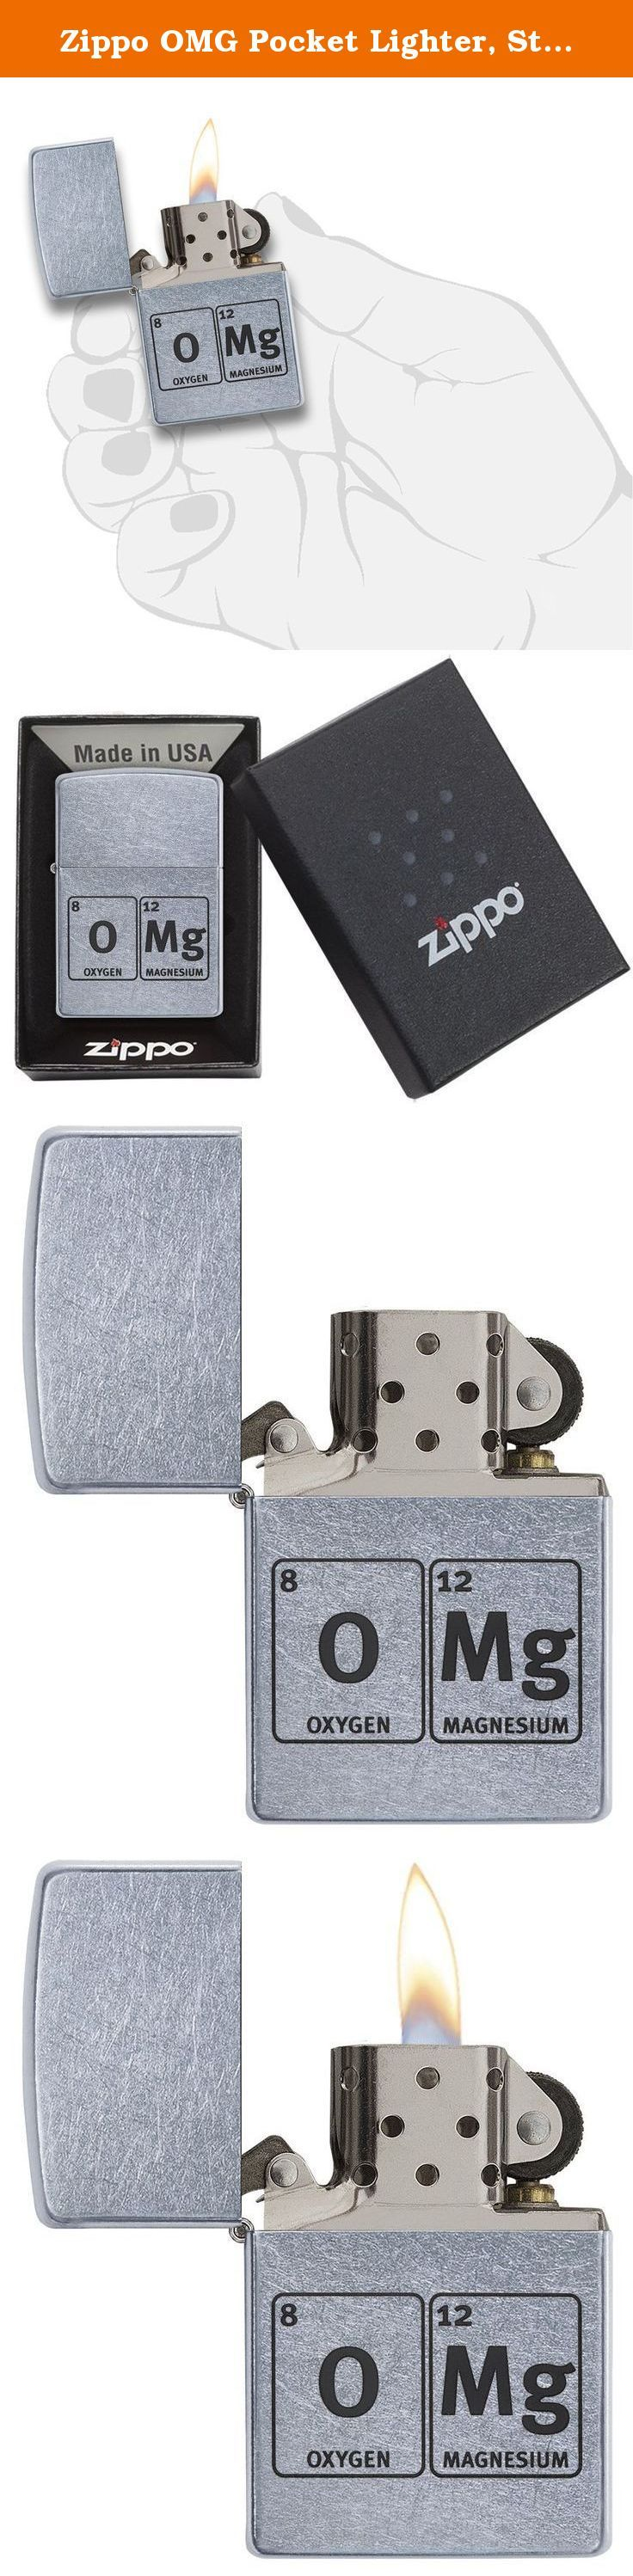 Zippo OMG Pocket Lighter, Street Chrome. A Zippo lighter with a bare metal, street chrome, classic size case, finished with a OMG design. This lighter requires fluid fuel. The lighter is supplied unfueled for safety during shipping.